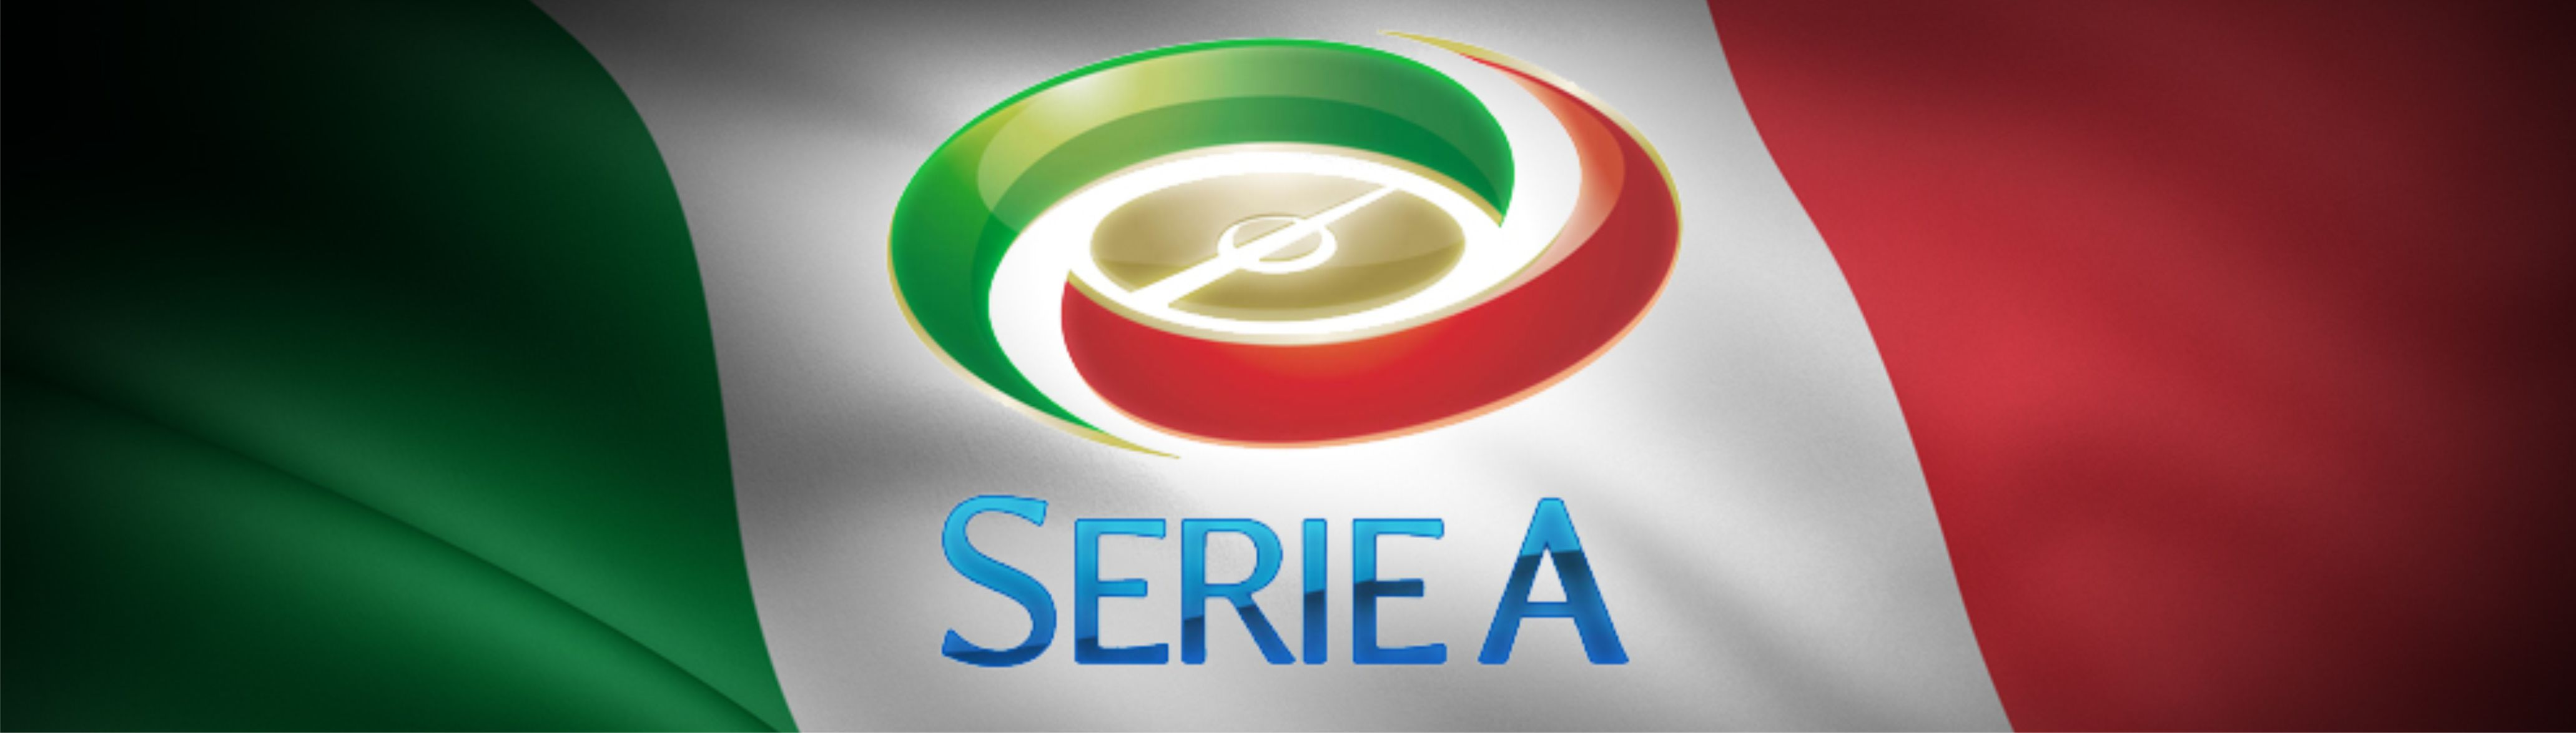 Voetbalshirts Serie A